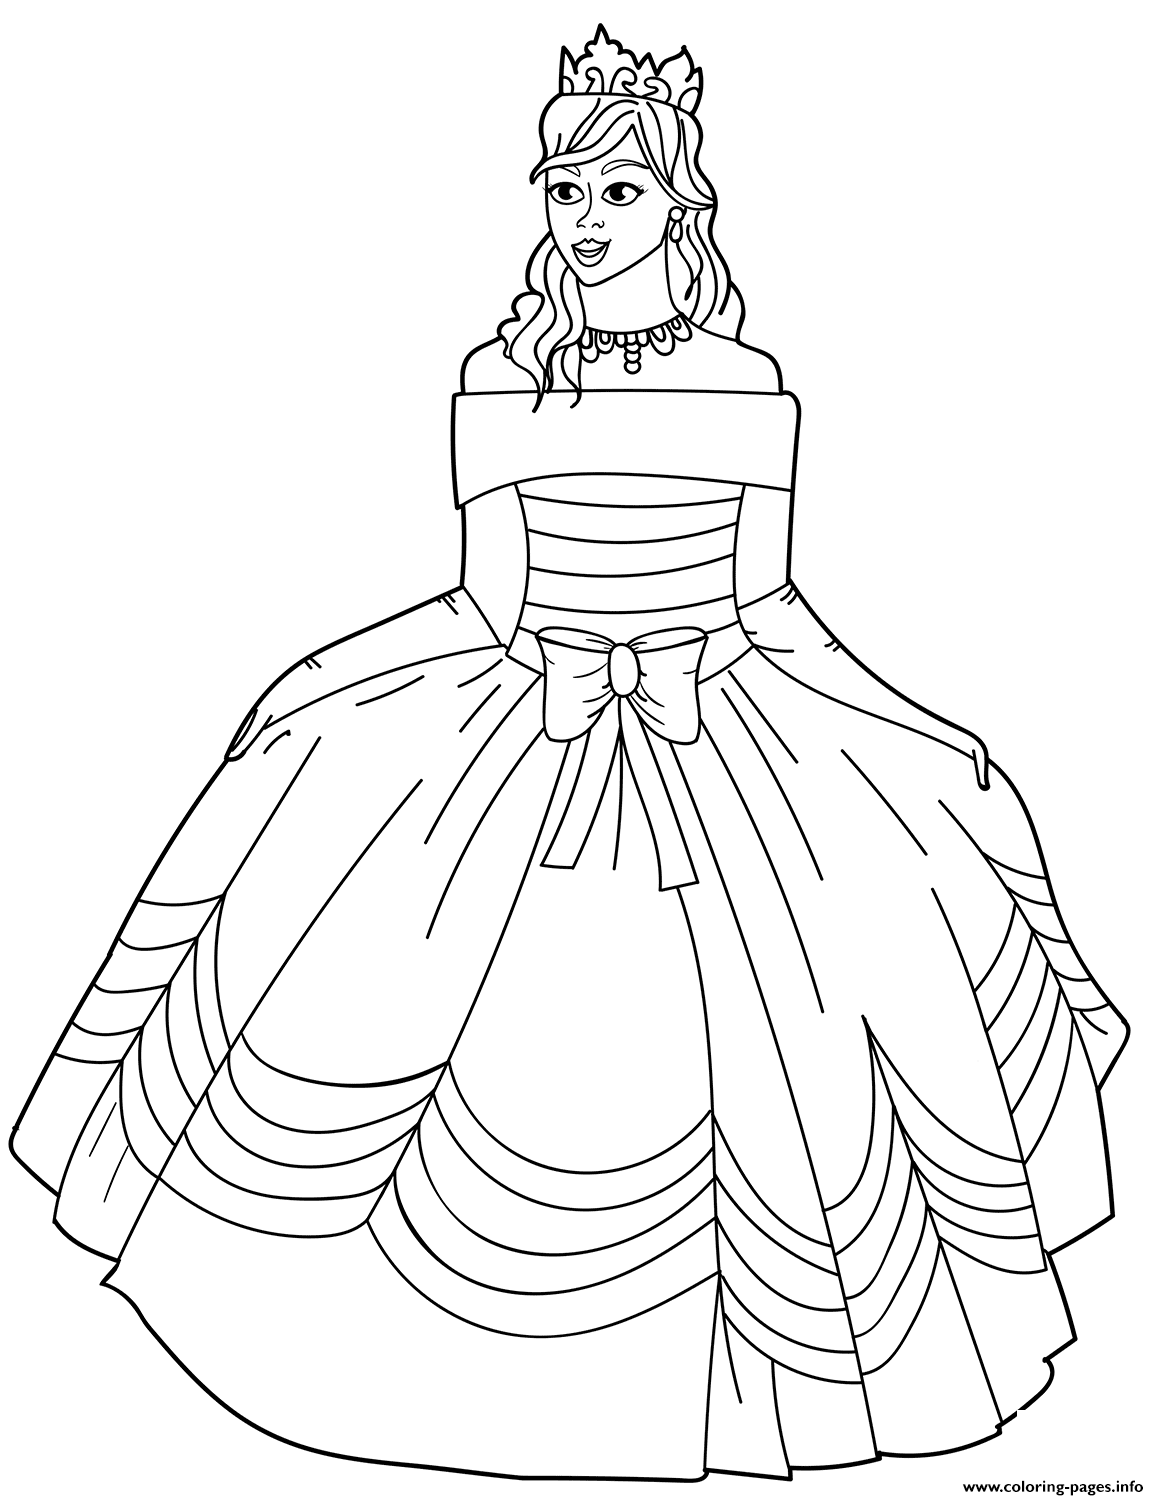 Princess In Ball Gown Off The Shoulder Dress Coloring